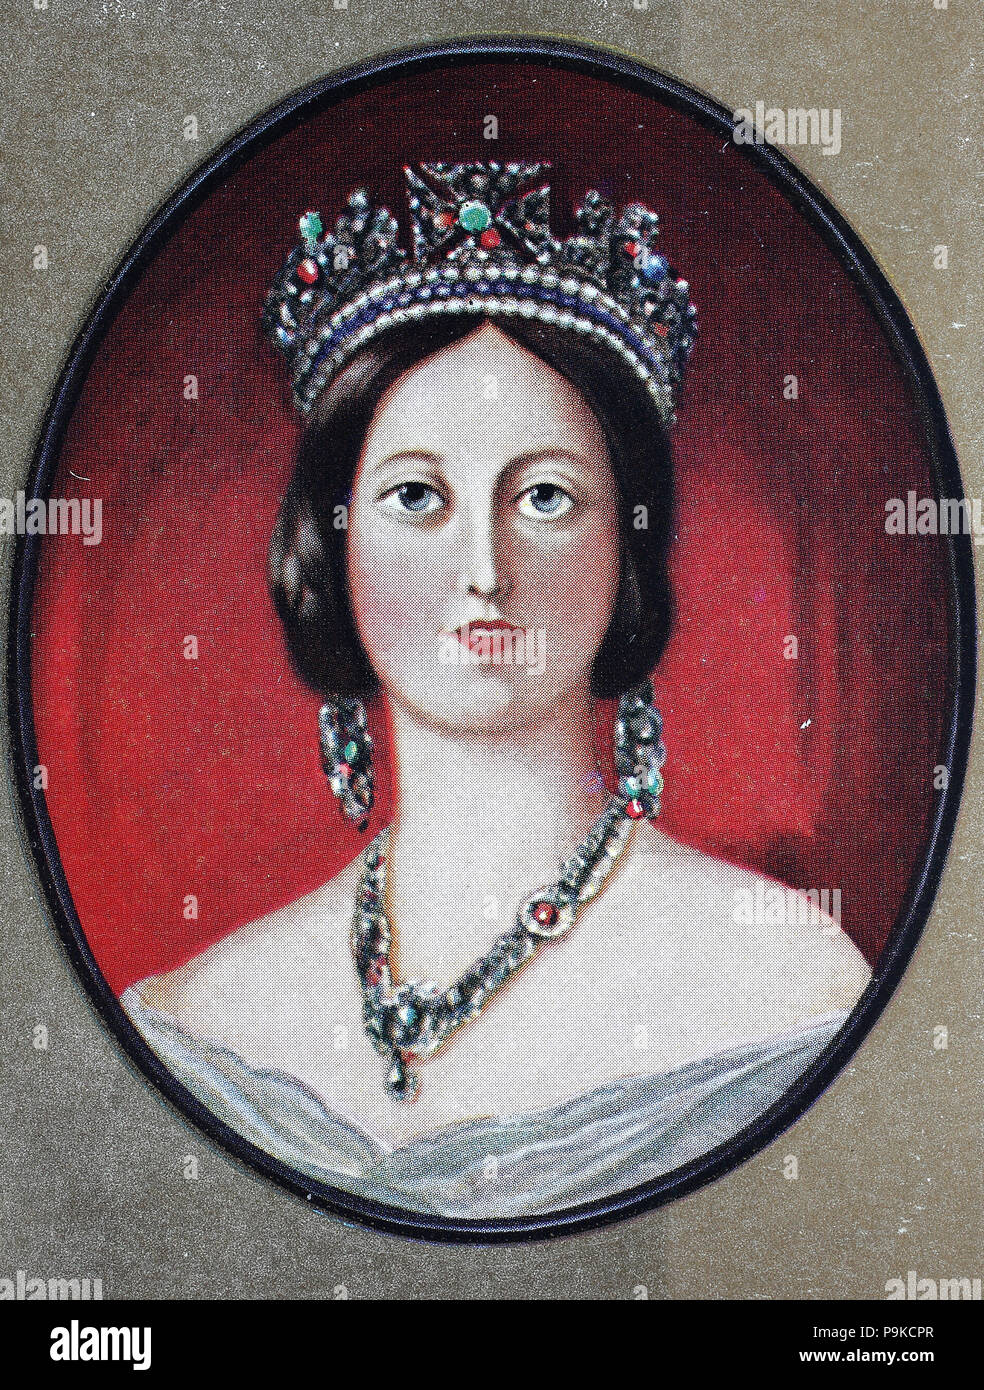 Victoria, Alexandrina Victoria, 24 May 1819 – 22 January 1901, was Queen of the United Kingdom of Great Britain and Ireland from 20 June 1837 until her death, digital improved reproduction of an original print from the year 1900 - Stock Image